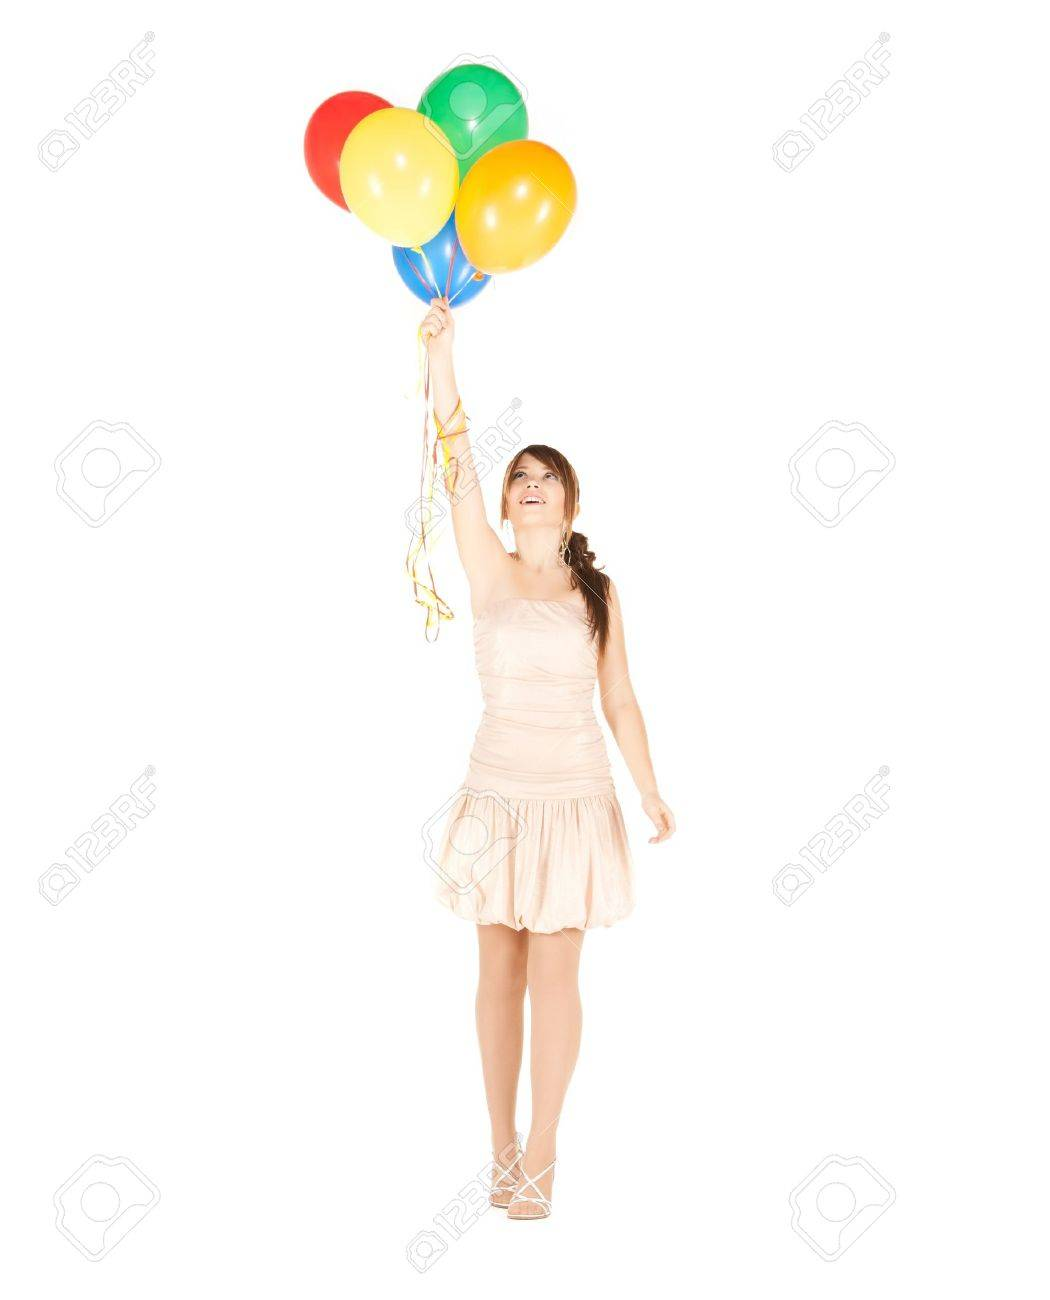 picture of happy girl with colorful balloons Stock Photo - 19857118